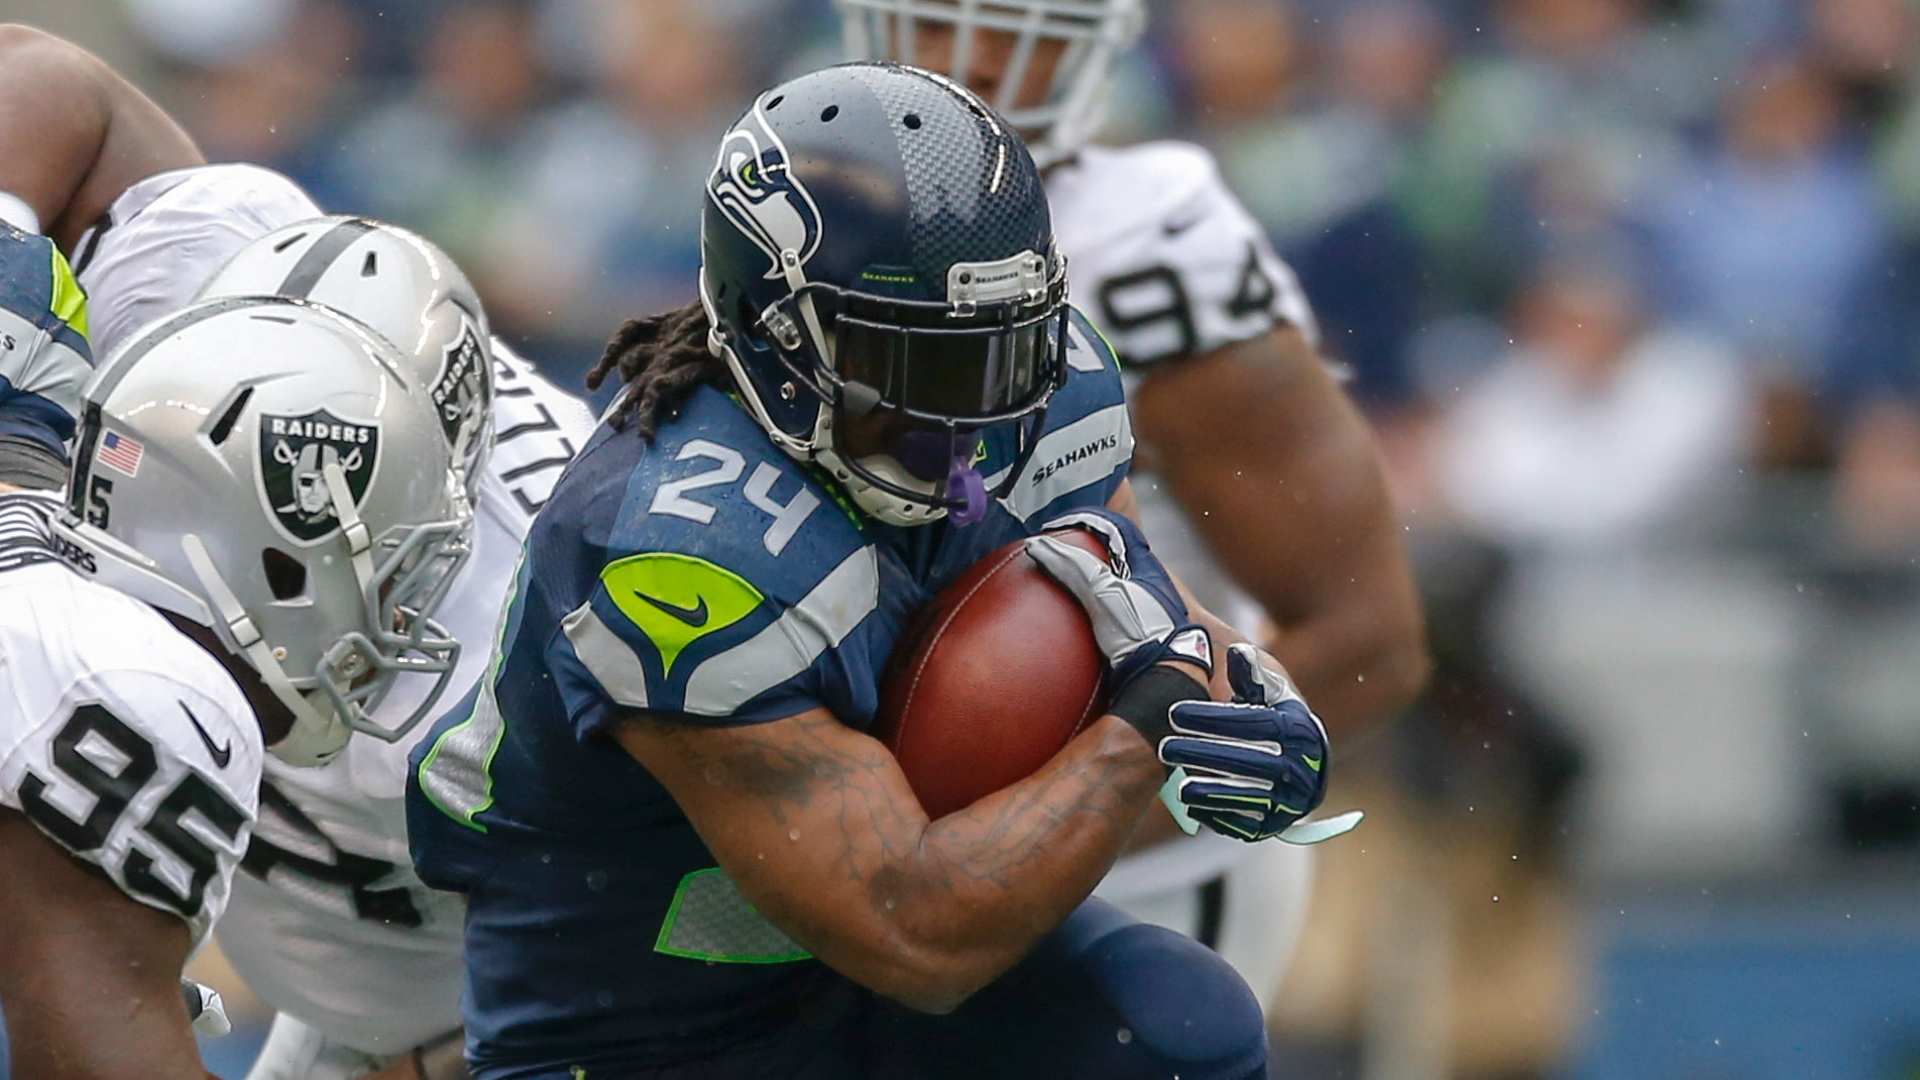 Howe: Marshawn Lynch To The Patriots Still A 'Long Shot'